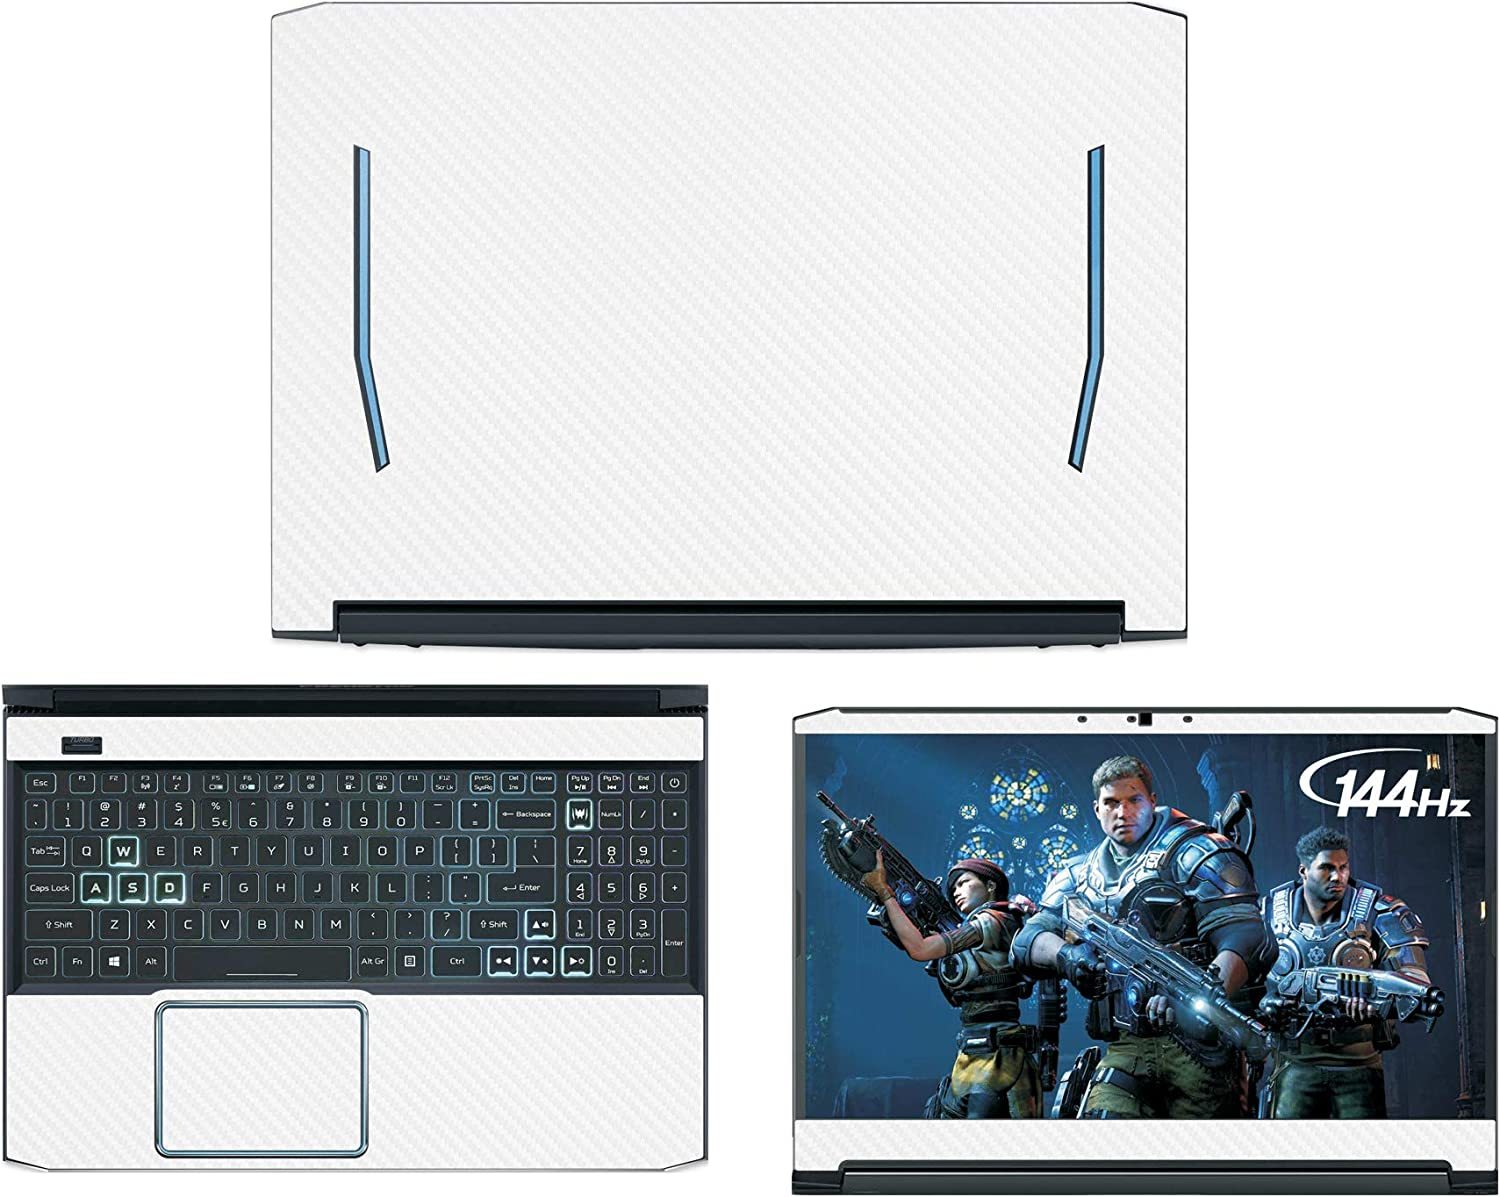 "Decalrus - Protective Decal for Acer Predator Helios 300 PH315-52 (15.6"" Screen) Laptop White Carbon Fiber Skin case Cover wrap CFACprdator_Helio_300_PH315-52White"